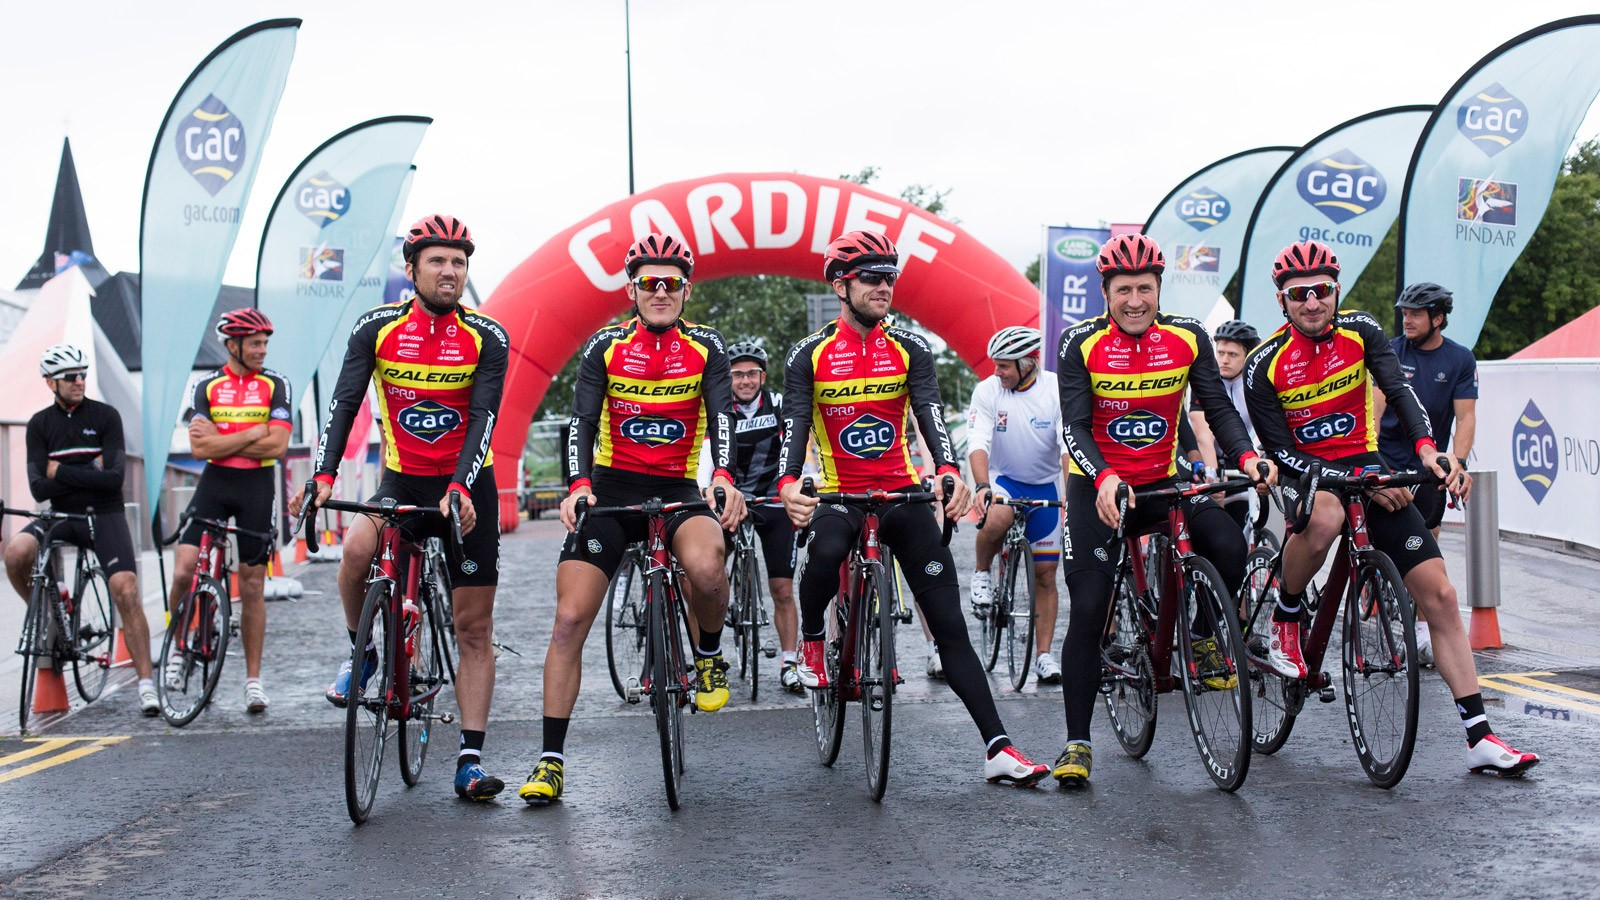 Team Raleigh on the start line of the first ever Cyclosail Cardiff with GAC Pindar